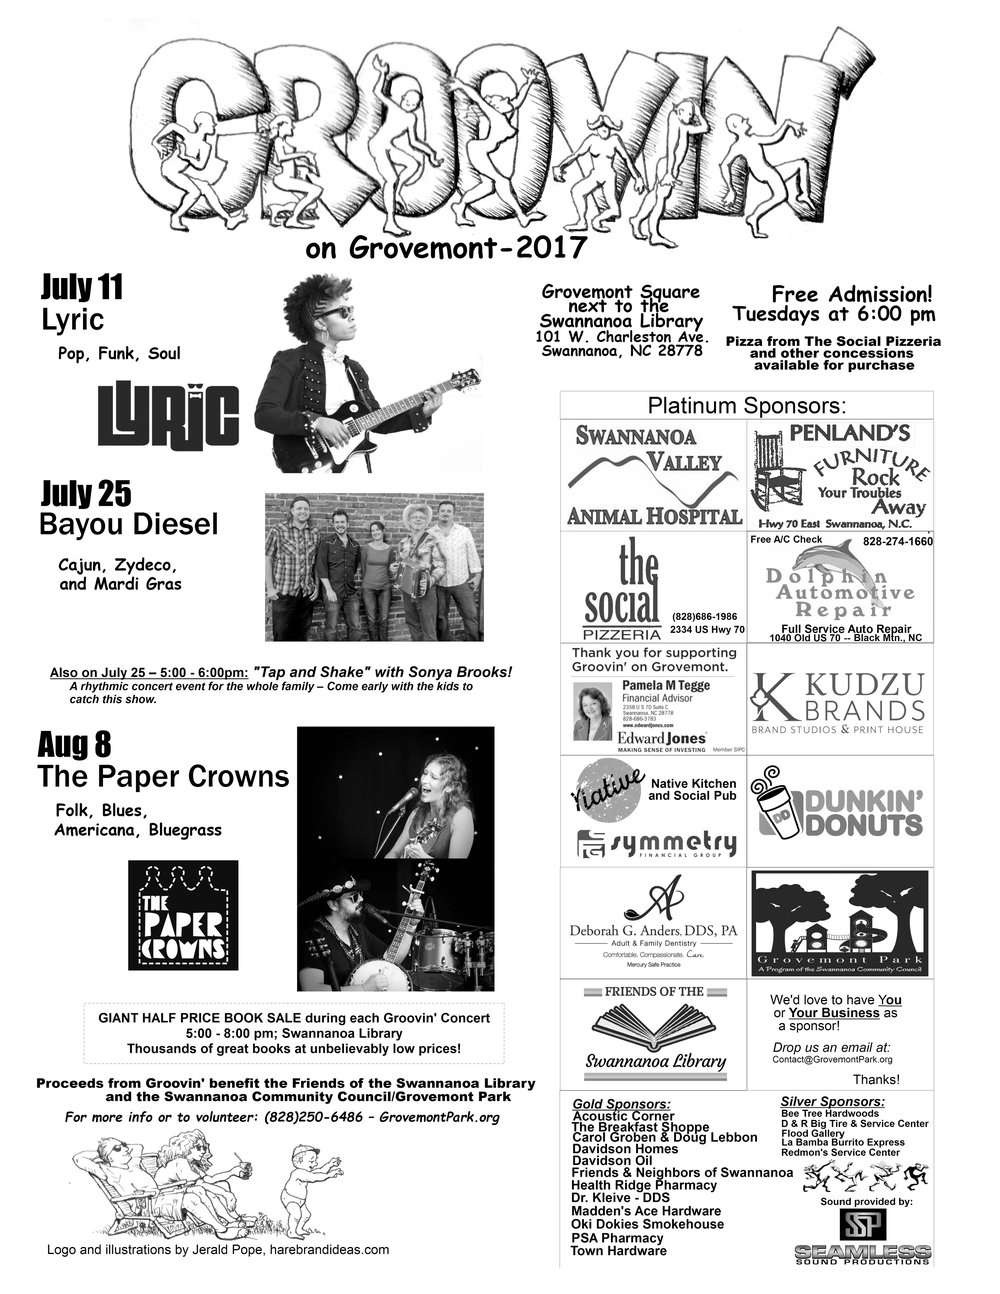 "- The 15th annual Groovin' on Grovemont summer concert series returns to Grovemont Square (adjacent to the Swannanoa Library) on July 11, July 25 and August 8, at 6:00 p.m.Bring a blanket or lawn chair and come enjoy these family-friendly evenings of great music, brought to you entirely by local sponsors and community volunteers! The concert series is free and open to the public. Concessions, including pizza, hot dogs and home-baked goods, are available for purchase. Proceeds benefit the Friends of the Swannanoa Library and the Swannanoa Community Council.Here's the entertainment schedule:July 11: LYRIC – With an enlightened mixture of pop, soul and funk, LYRIC awakens an undiscovered spirit within their audiences, and consistently delights crowds across the region. Led by the poetic and soulful voice of lyricist and lead singer Leeda Jones, this group of multi-talented musicians has been described by many as the best band in Asheville.July 25: Bayou Diesel – This local Black Mountain band has been traveling the gig-highways of Western North Carolina since 2005. The band focuses on performing the powerful Cajun, Zydeco and Mardi Gras-style dance music of Louisiana. Featuring the accordion, rubboard, rhythm section and occasional French lyrics, Bayou Diesel cooks up some tasty jam-balaya. Put on your dancing shoes! (Note: ""Tap and Shake"" with Sonya Brooks – a rhythmic concert event for the whole family -begins at 5PM on July 25. Come early with the kids to catch this show.)August 8: The Paper Crowns – The Paper Crowns are the multi-instrument, genre-crossing power-duo of Spiro and Nicole Nicolopoulos. Earning their reputation as the genuine article and as a band on the cutting edge of modern roots music, the Paper Crowns have a musical chemistry that is a gumbo of Appalachian folk and bluegrass, Dixieland melodies, delta blues, acid rock, murder ballads, outlaw country and Southern Gospel that they cook up into a sound all their own.Bonus feature: GIANT HALF-PRICE BOOK SALE during each Groovin', 5:00 – 8:30 p.m. at the Swannanoa Library, 101 West Charleston Avenue. Thousands of great books at unbelievably low prices!Individual and business sponsorship opportunities for Groovin' on Grovemont are still available, and there are lots of volunteer opportunities, too. To inquire, call the library at 828-250-6486."